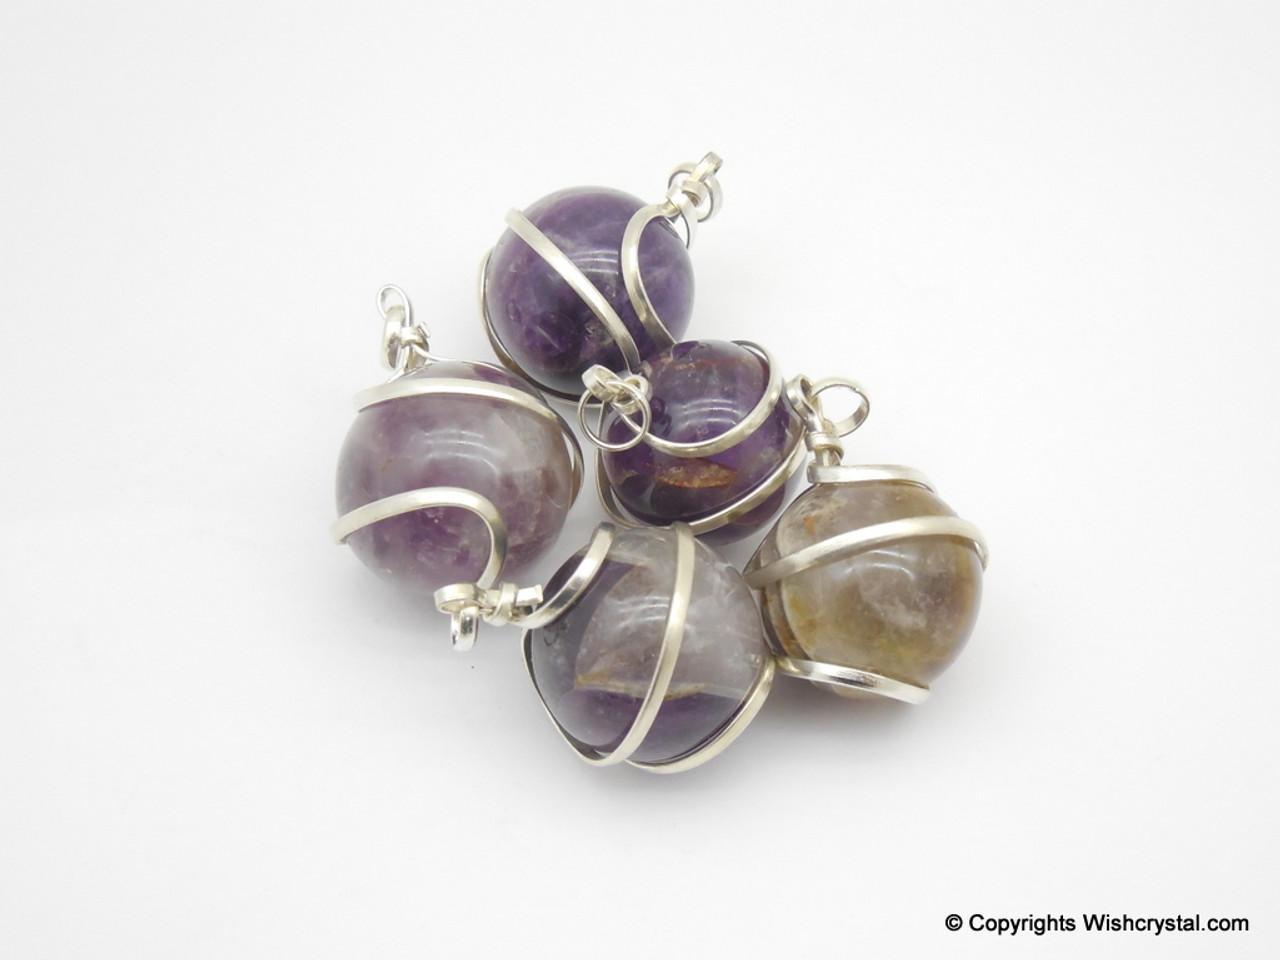 Amethyst sphere / ball wire wrap pendant - Wishcrystal.com